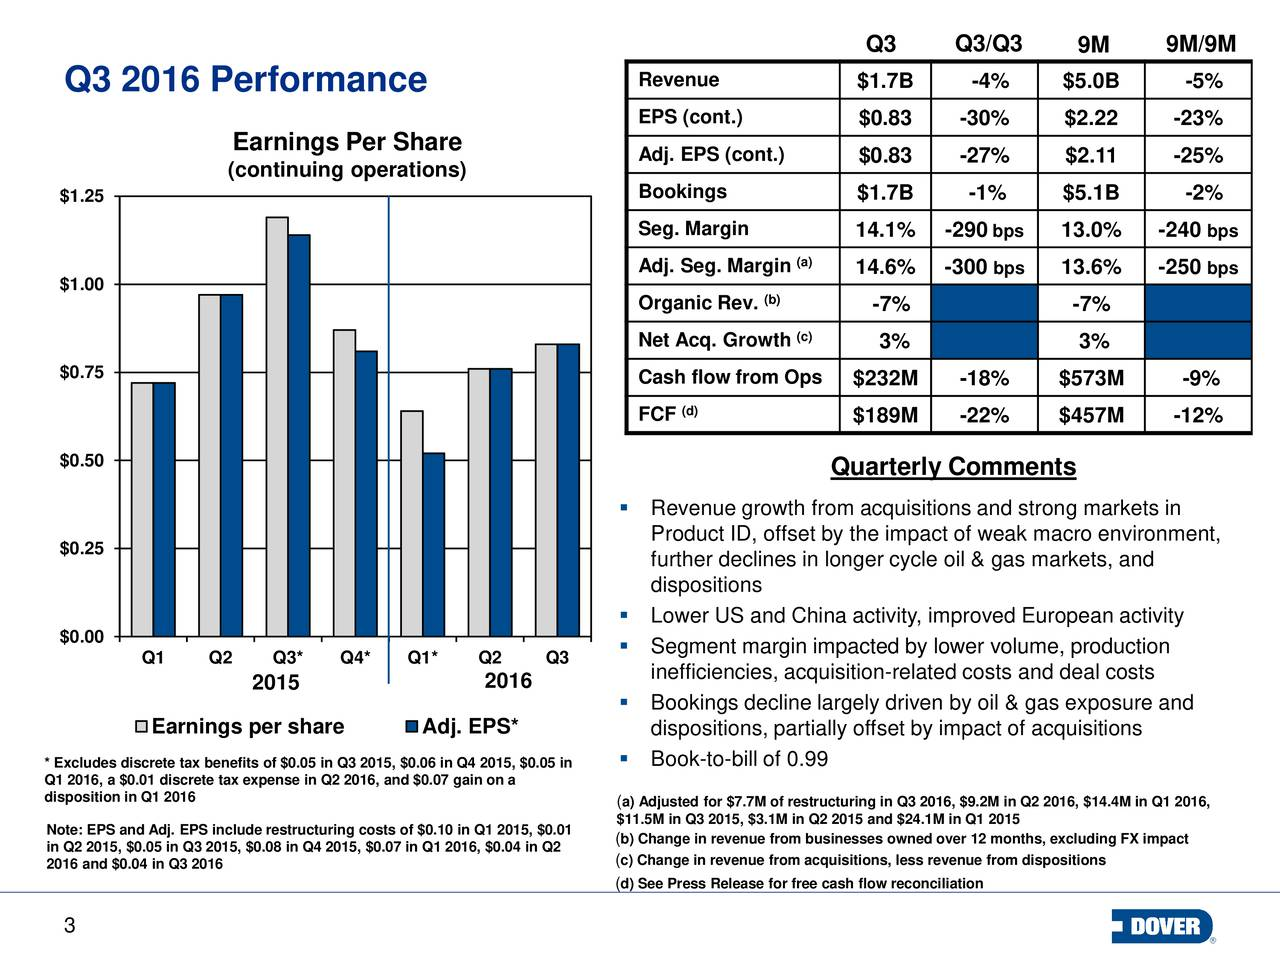 Revenue $1.7B -4% $5.0B -5% Q3 2016 Performance EPS (cont.) $0.83 -30% $2.22 -23% Earnings Per Share Adj. EPS (cont.) $0.83 -27% $2.11 -25% (continuing operations) $1.25 Bookings $1.7B -1% $5.1B -2% Seg. Margin 14.1% -290 bps 13.0% -240bps Adj. Seg. Margin(a) 14.6% -300 bps 13.6% -250bps $1.00 (b) Organic Rev. -7% -7% (c) Net Acq. Growth 3% 3% $0.75 Cash flow from Ops $232M -18% $573M -9% FCF (d) $189M -22% $457M -12% $0.50 Quarterly Comments Revenue growth from acquisitions and strong markets in $0.25 Product ID, offset by the impact of weak macro environment, further declines in longer cycle oil & gas markets, and dispositions Lower US and China activity, improved European activity $0.00  Segment margin impacted by lower volume, production Q1 Q2 Q3* Q4* Q1* Q2 Q3 2015 2016 inefficiencies, acquisition-related costs and deal costs Bookings decline largely driven by oil & gas exposure and Earnings per share Adj. EPS* dispositions, partially offset by impact of acquisitions * Excludes discrete tax benefits of $0.05 in Q3 2015, $0.06 in Q4 2015, $0.05 in Q1 2016, a $0.01 discrete tax expense in Q2 2016, and $0.07 gain on a disposition in Q1 2016 a) Adjusted for $7.7M of restructuring in Q3 2016, $9.2M in Q2 2016, $14.4M in Q1 2016, $11.5M in Q3 2015, $3.1M in Q2 2015 and $24.1M in Q1 2015 in Q2 2015, $0.05 in Q3 2015, $0.08 in Q4 2015, $0.07 in Q1 2016, $0.04 in Q2 from businesses owned over 12 months, excluding FX impact 2016 and $0.04 in Q3 2016 c) Change in revenue from acquisitions, less revenue from dispositions d) See Press Release for free cash flow reconciliation 3